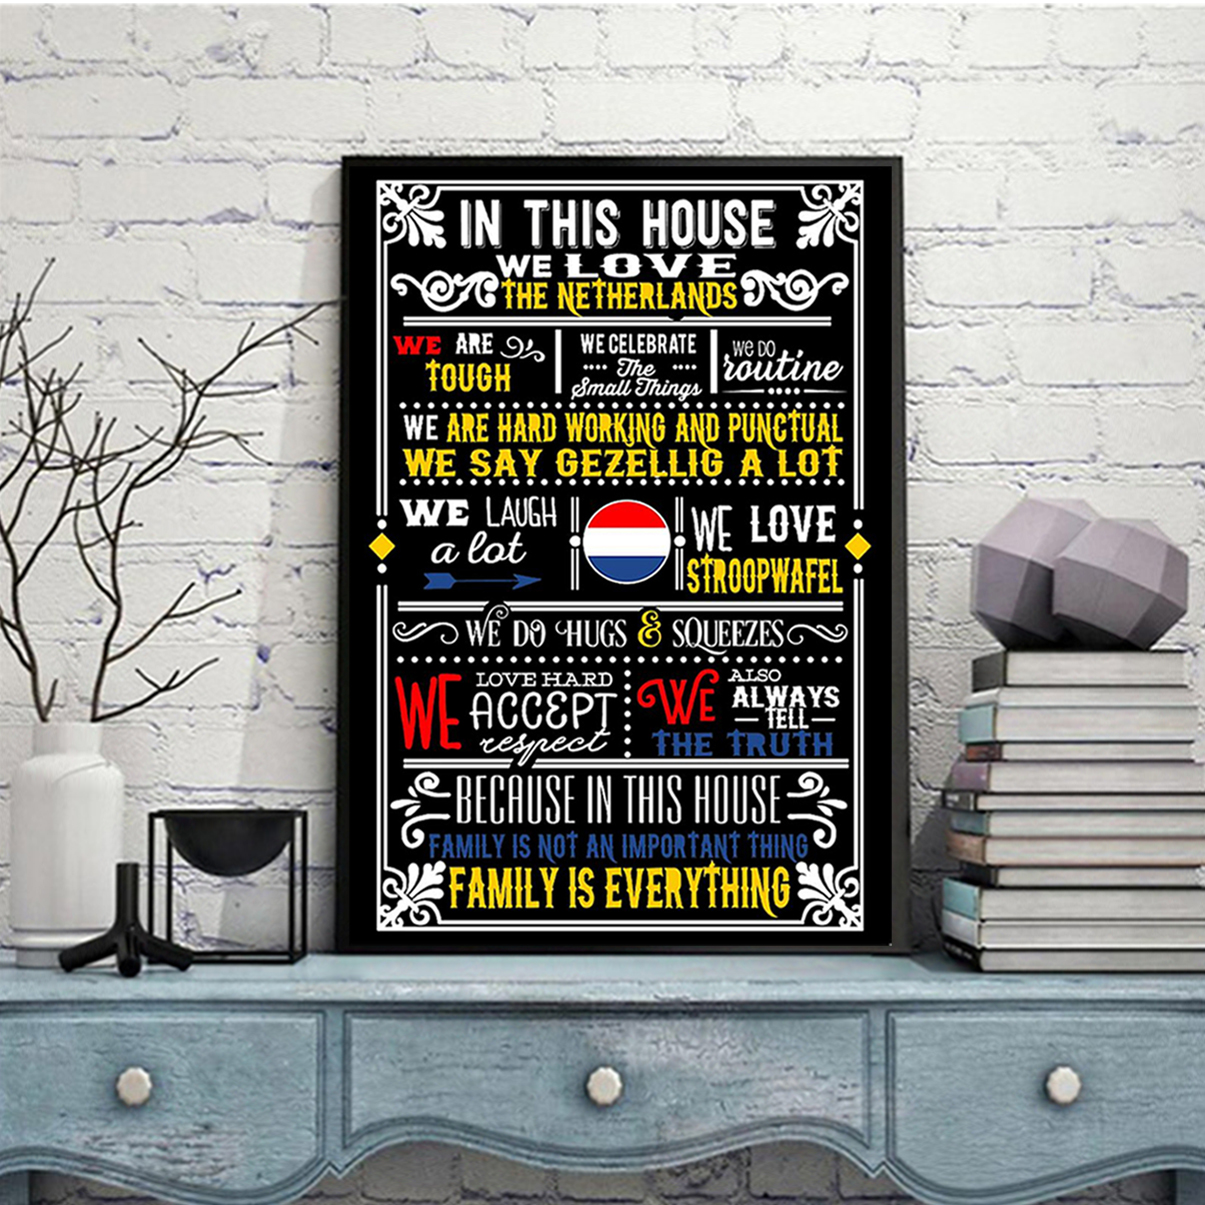 In this house we love netherlands poster A3